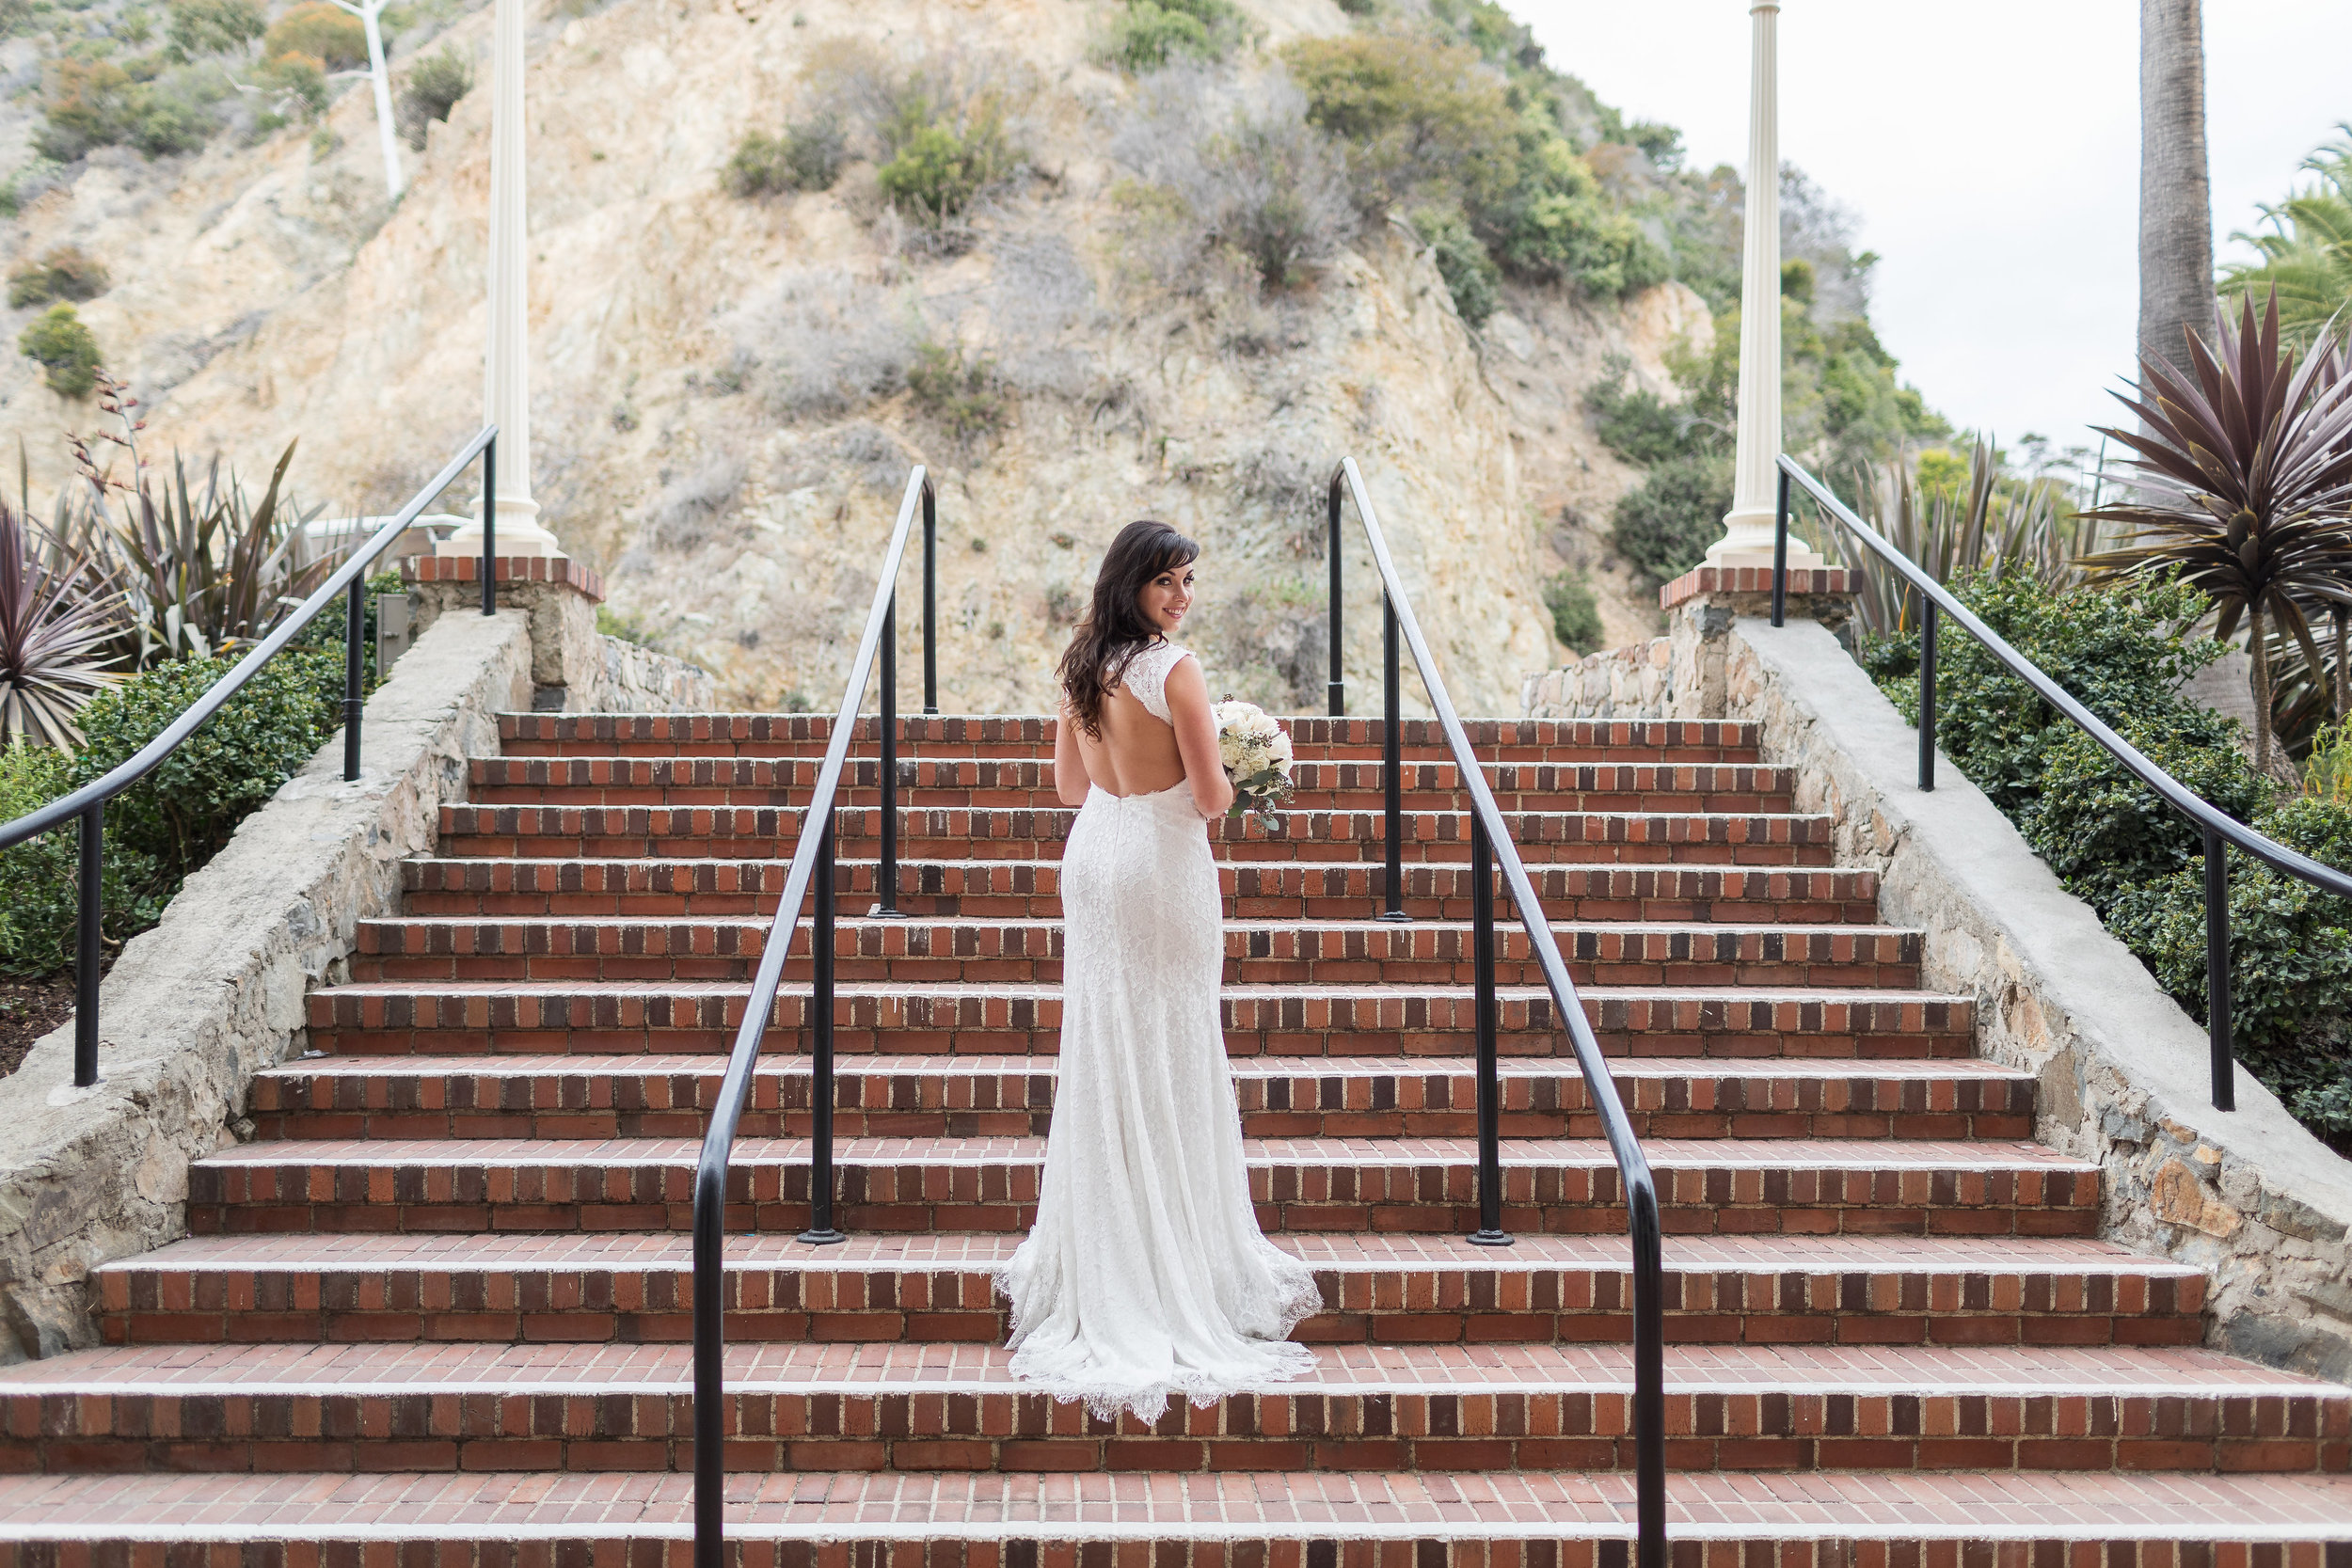 Photography Pose of Bride on Stairs Looking back over shoulder.jpg